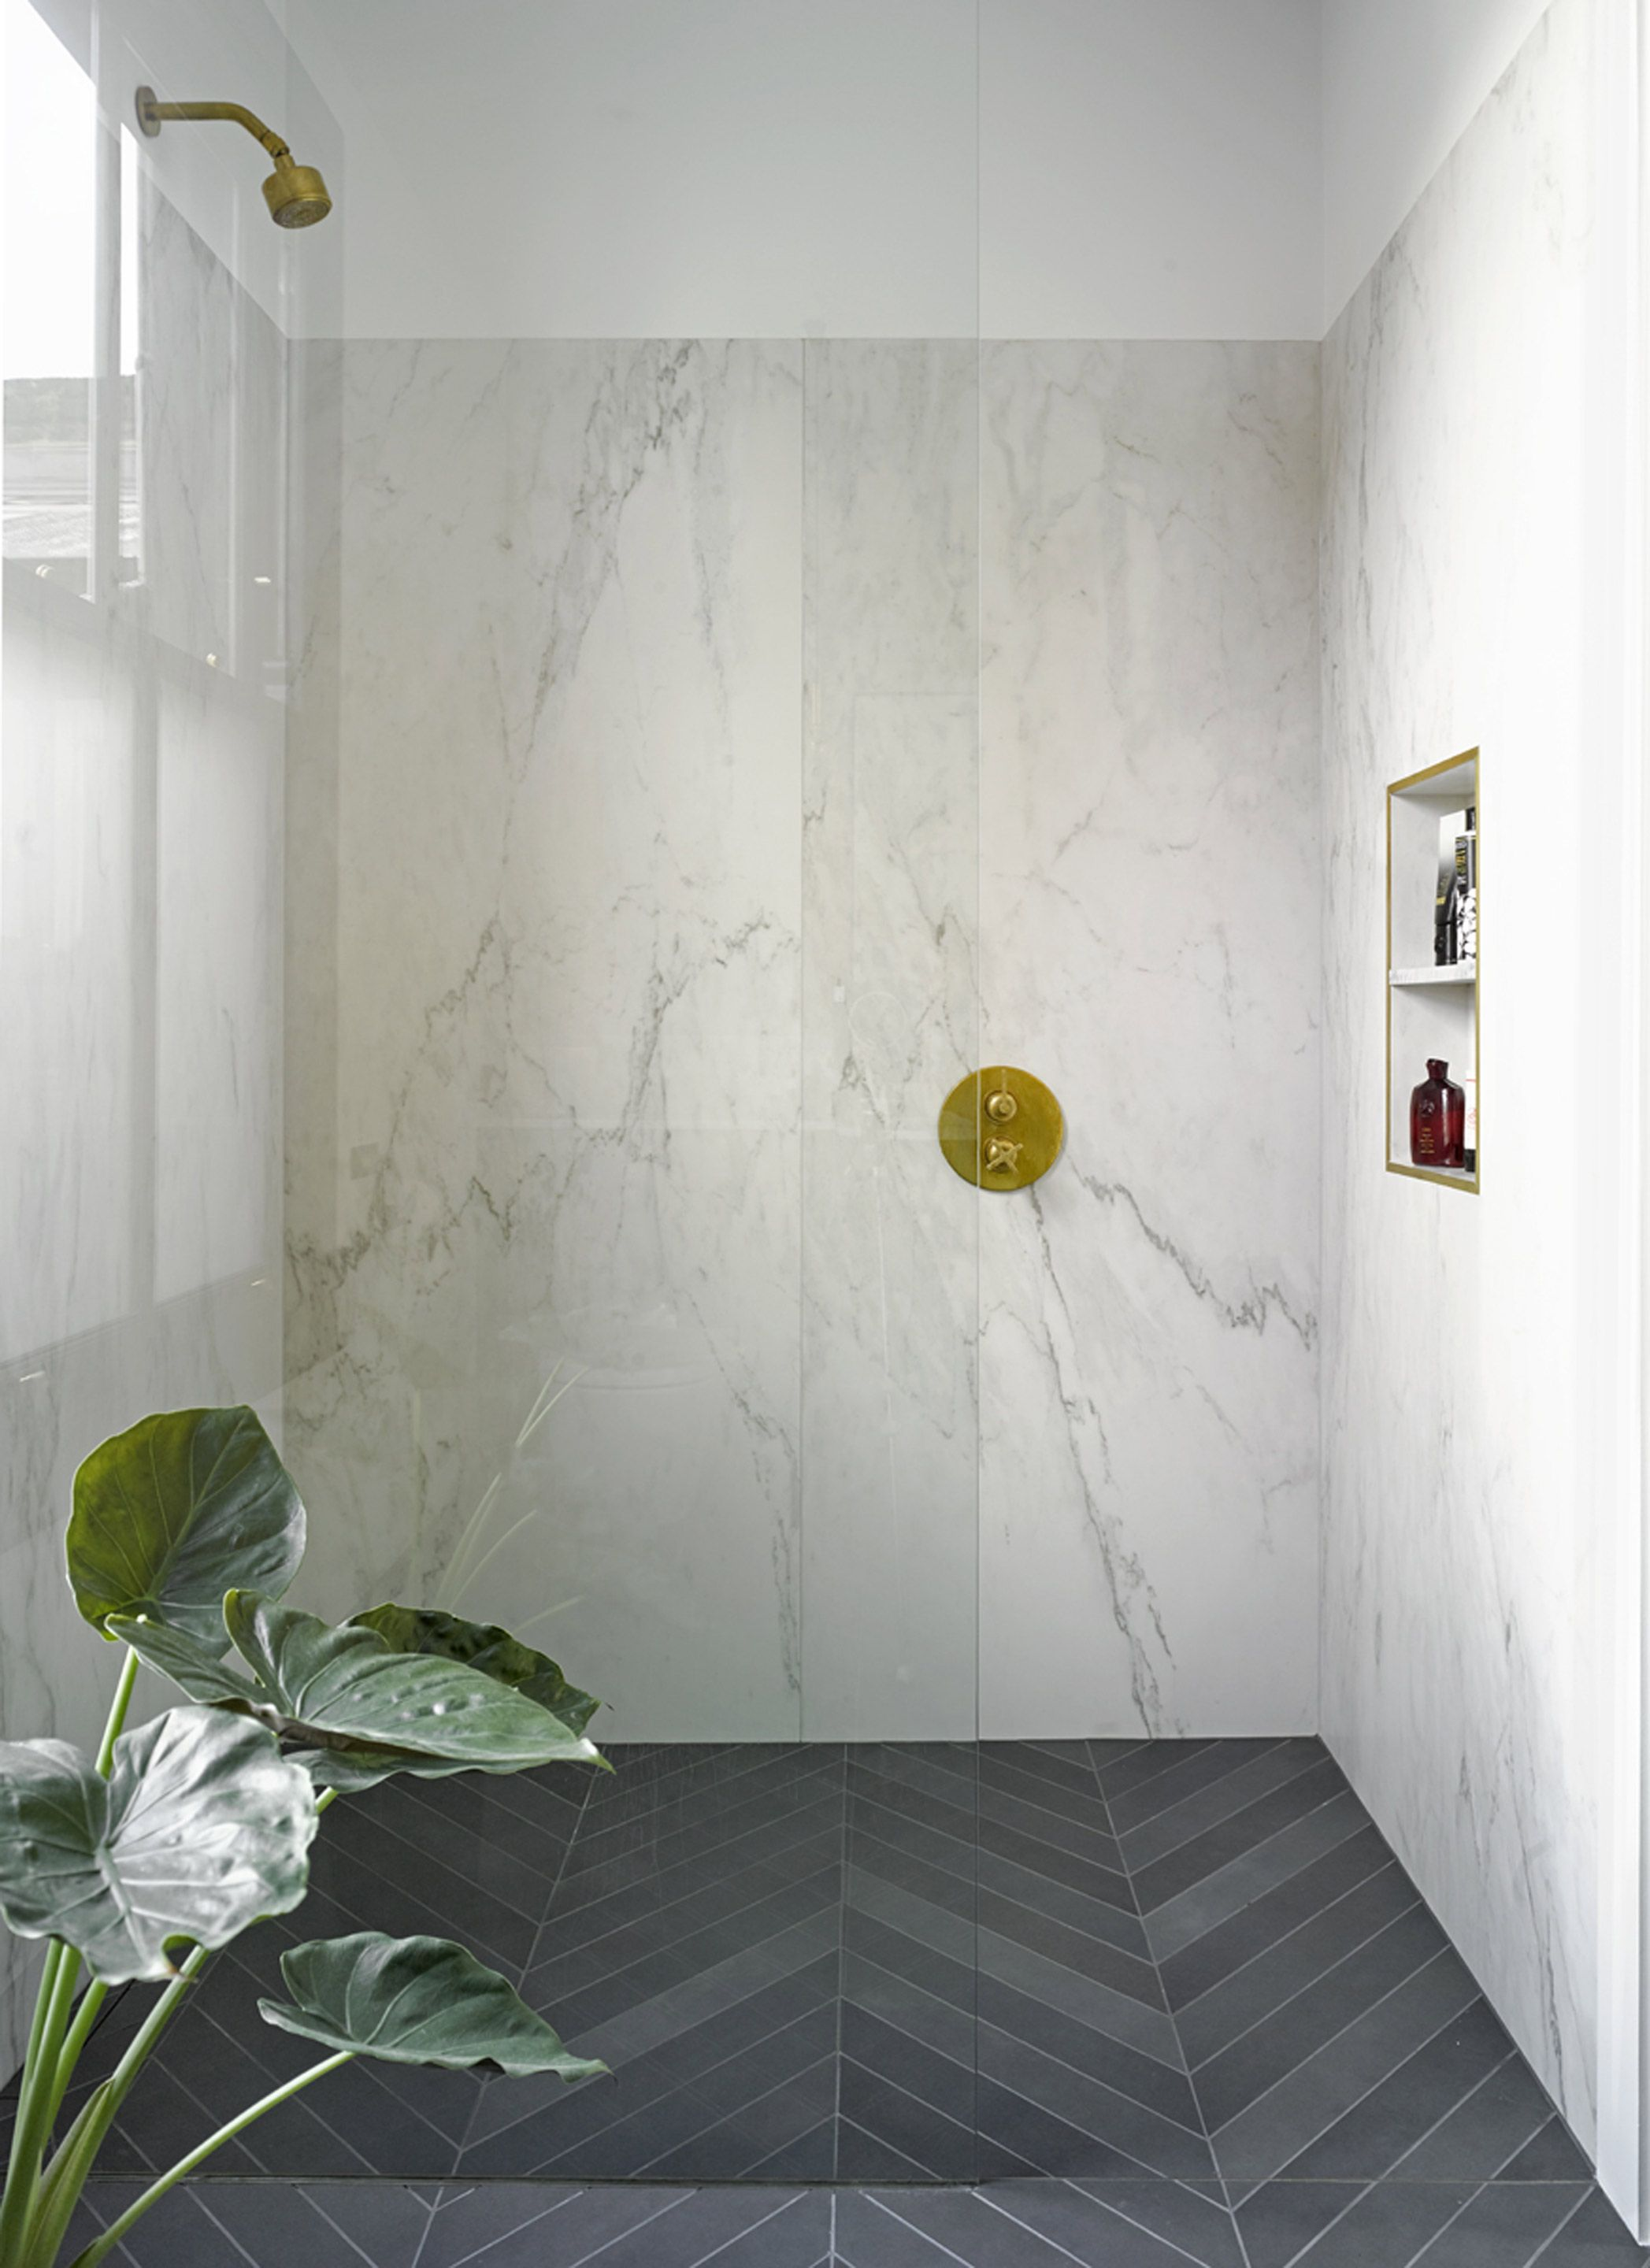 Shower Booth Wall Tilebig Pieces Less Grout Floor Dark